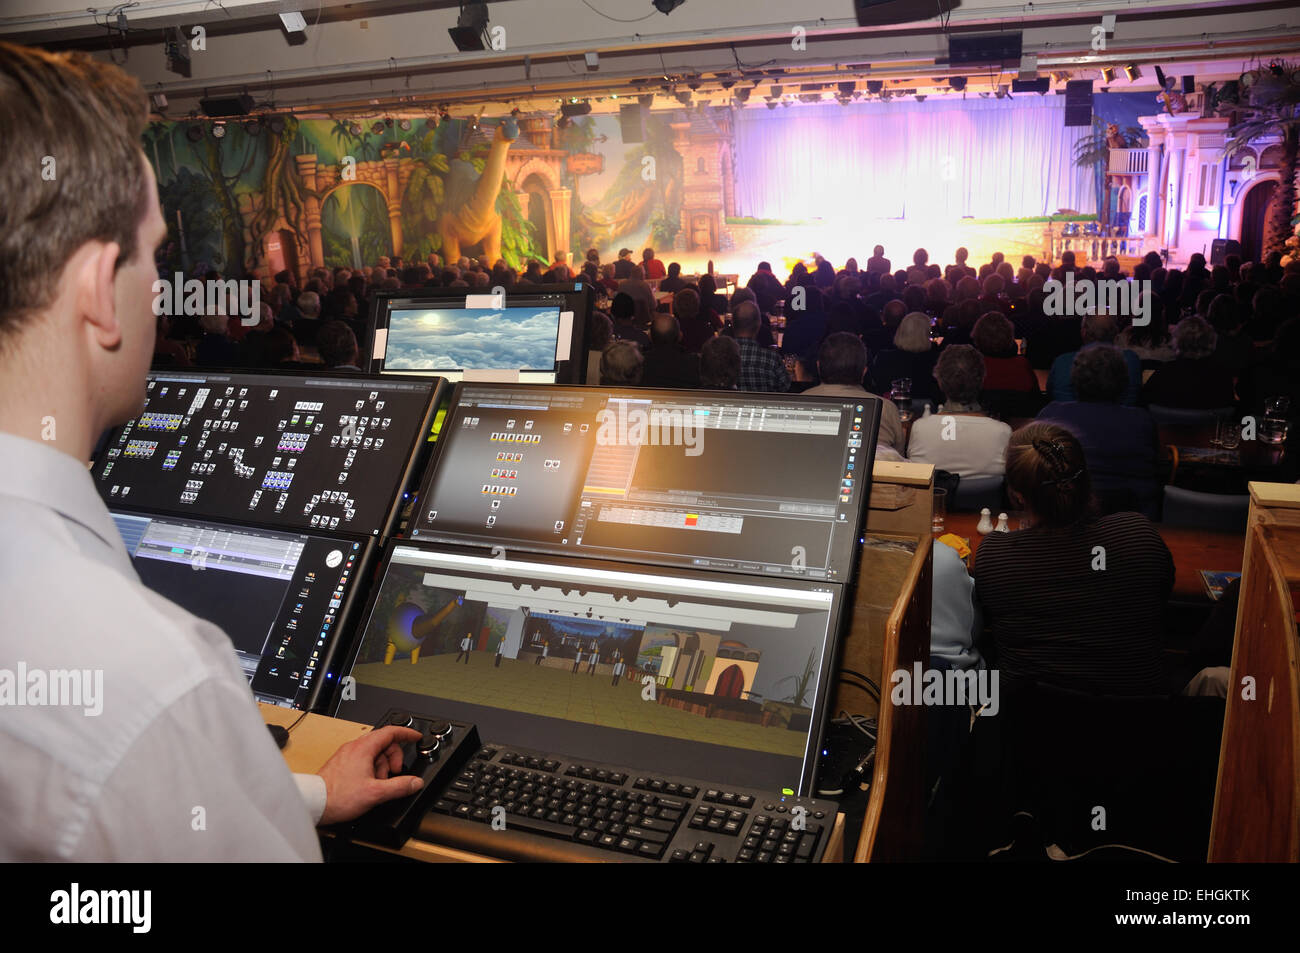 A lighting technician controls effects for a live stage performance - Stock Image